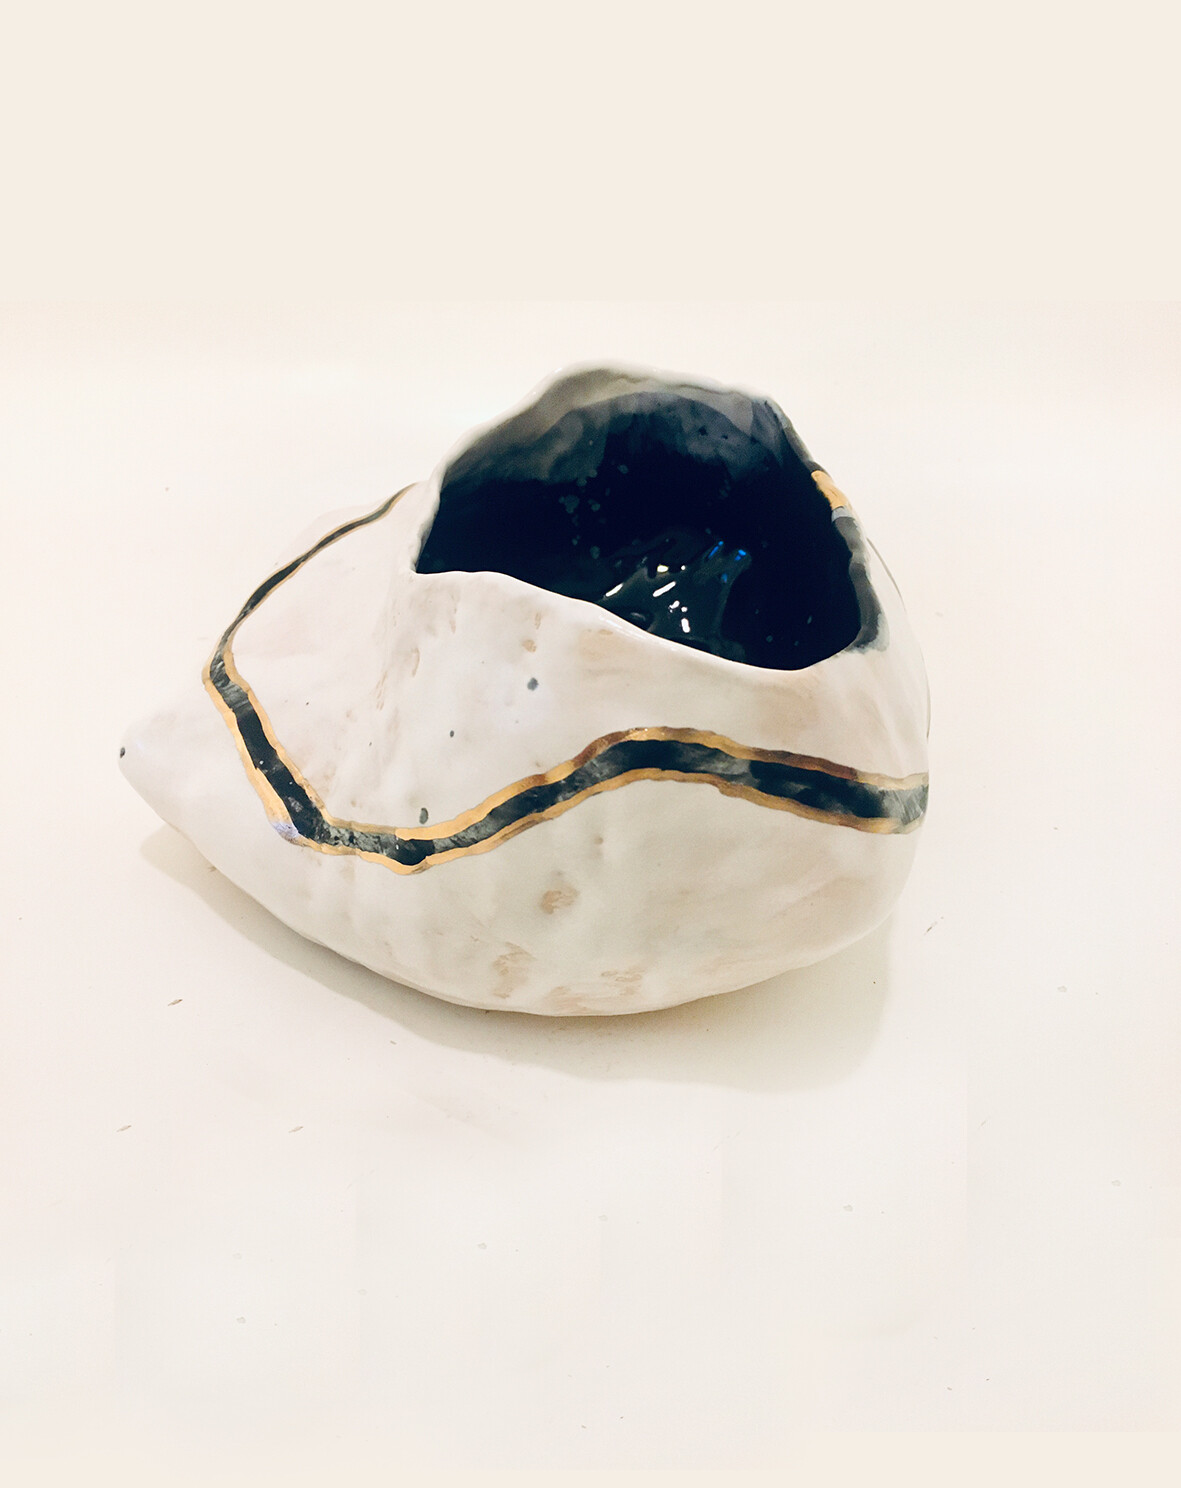 Black and White+ Gold Bowl